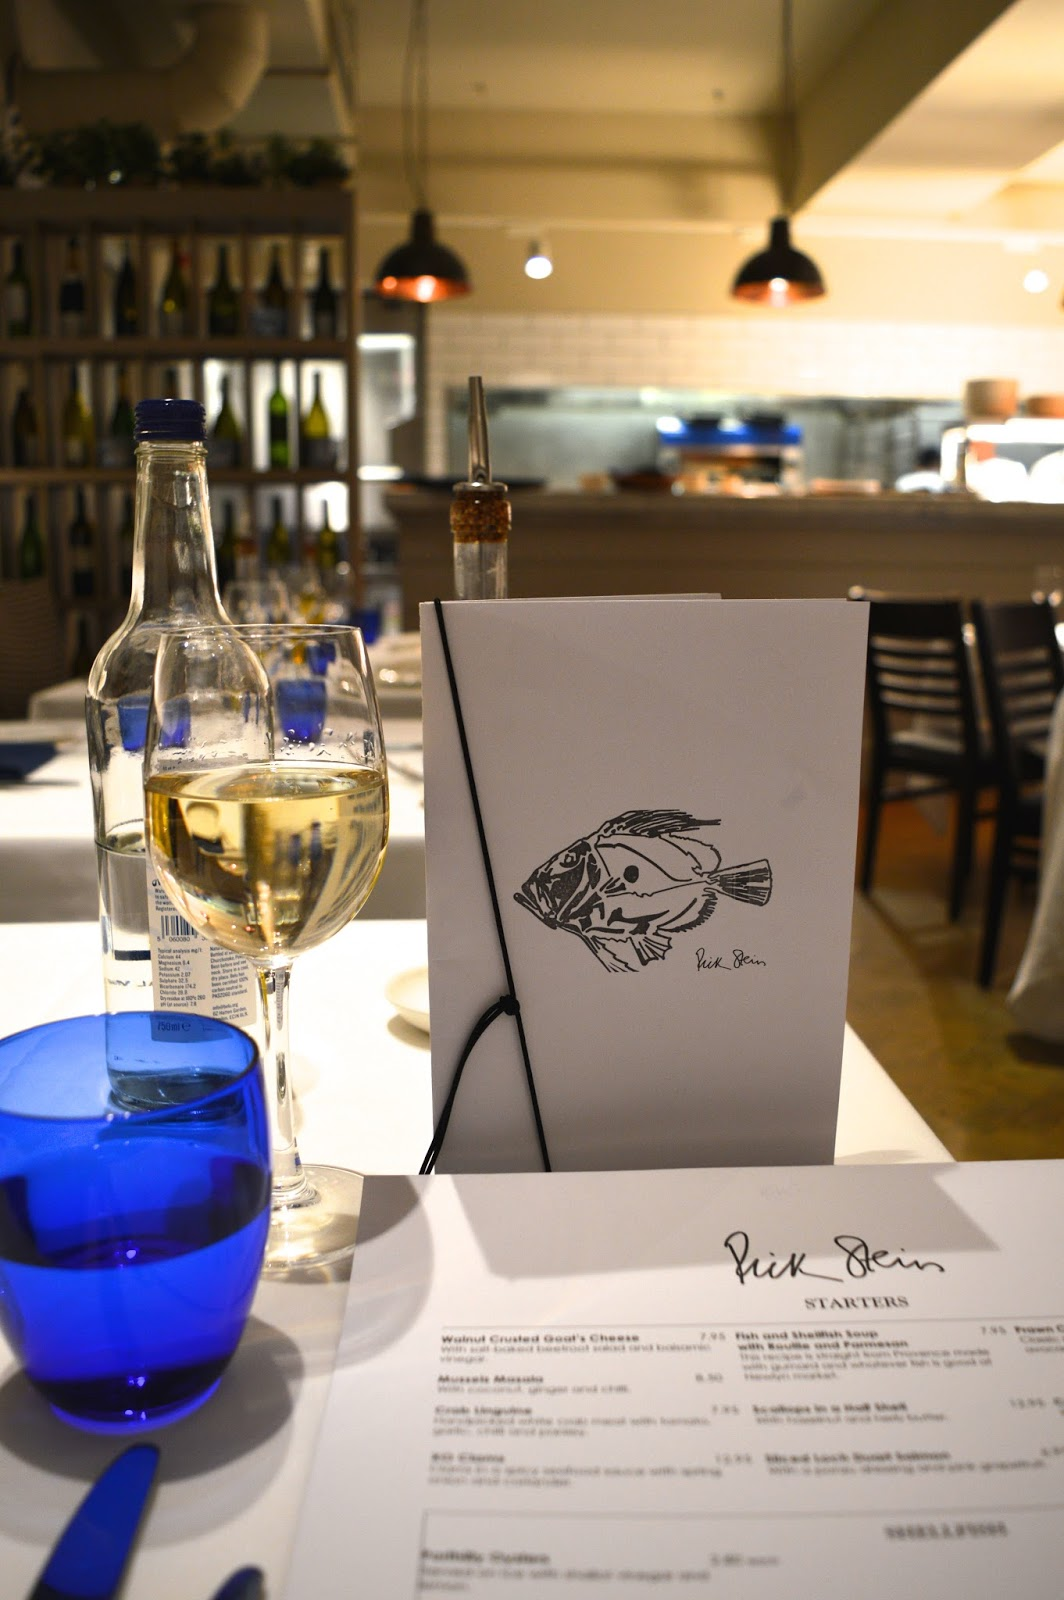 Rick Stein Winchester review, Rick Stein restaurant, food bloggers, Hampshire food blogger